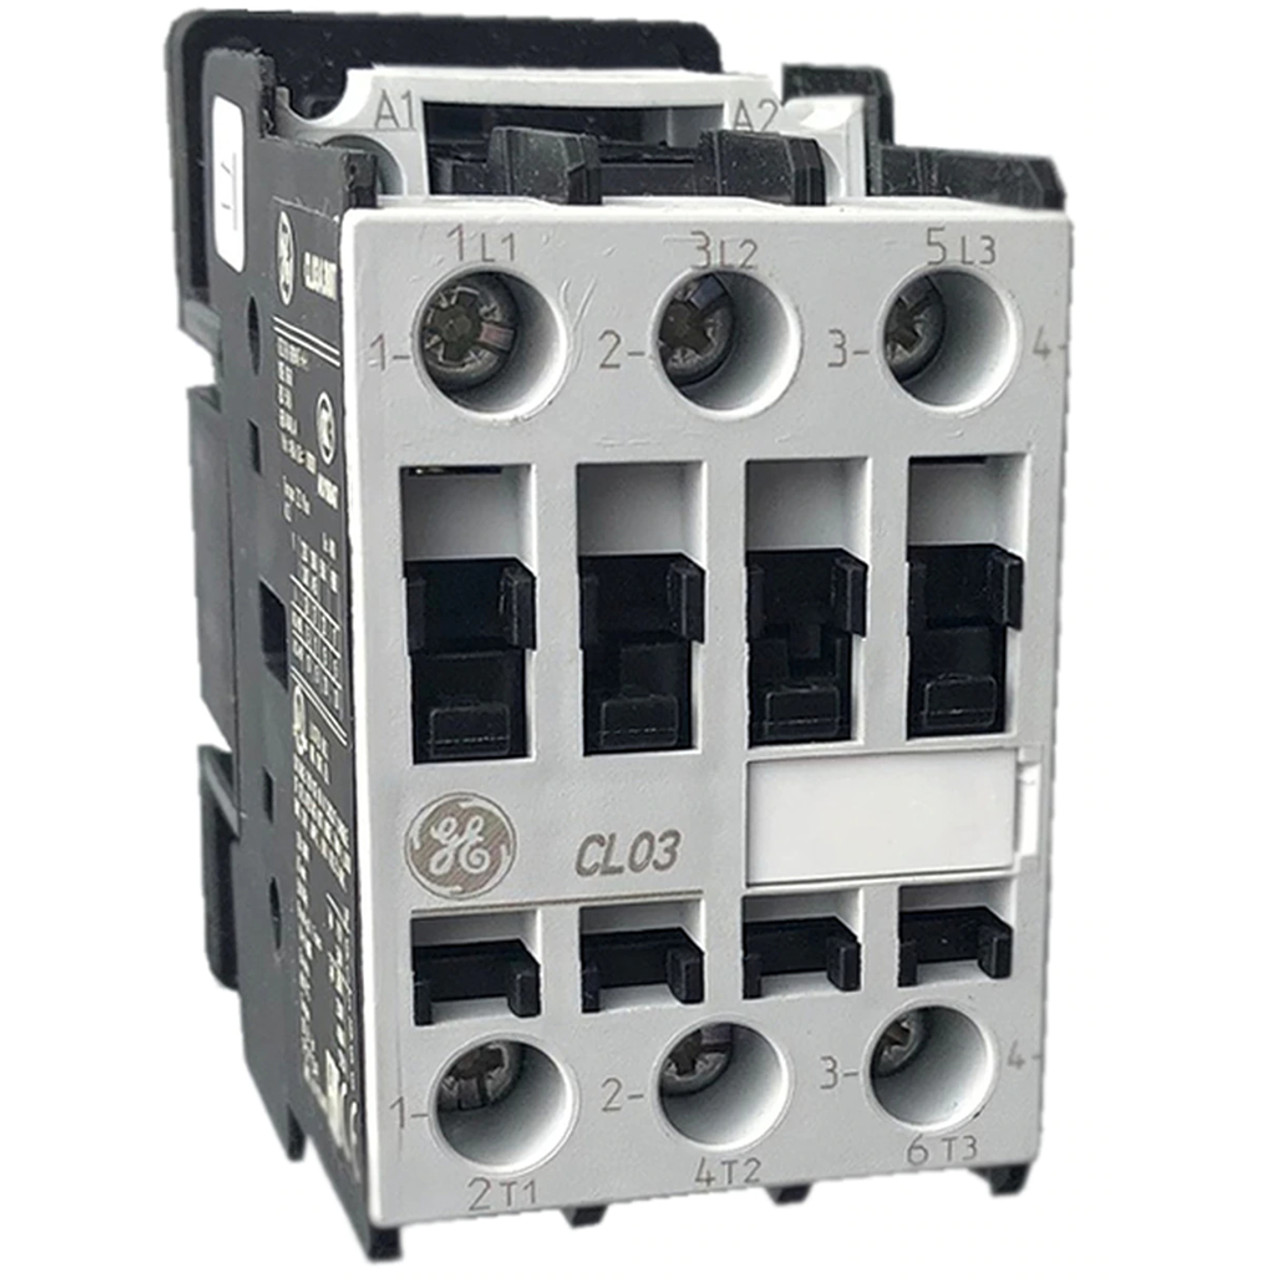 GE CL03A300T contactor